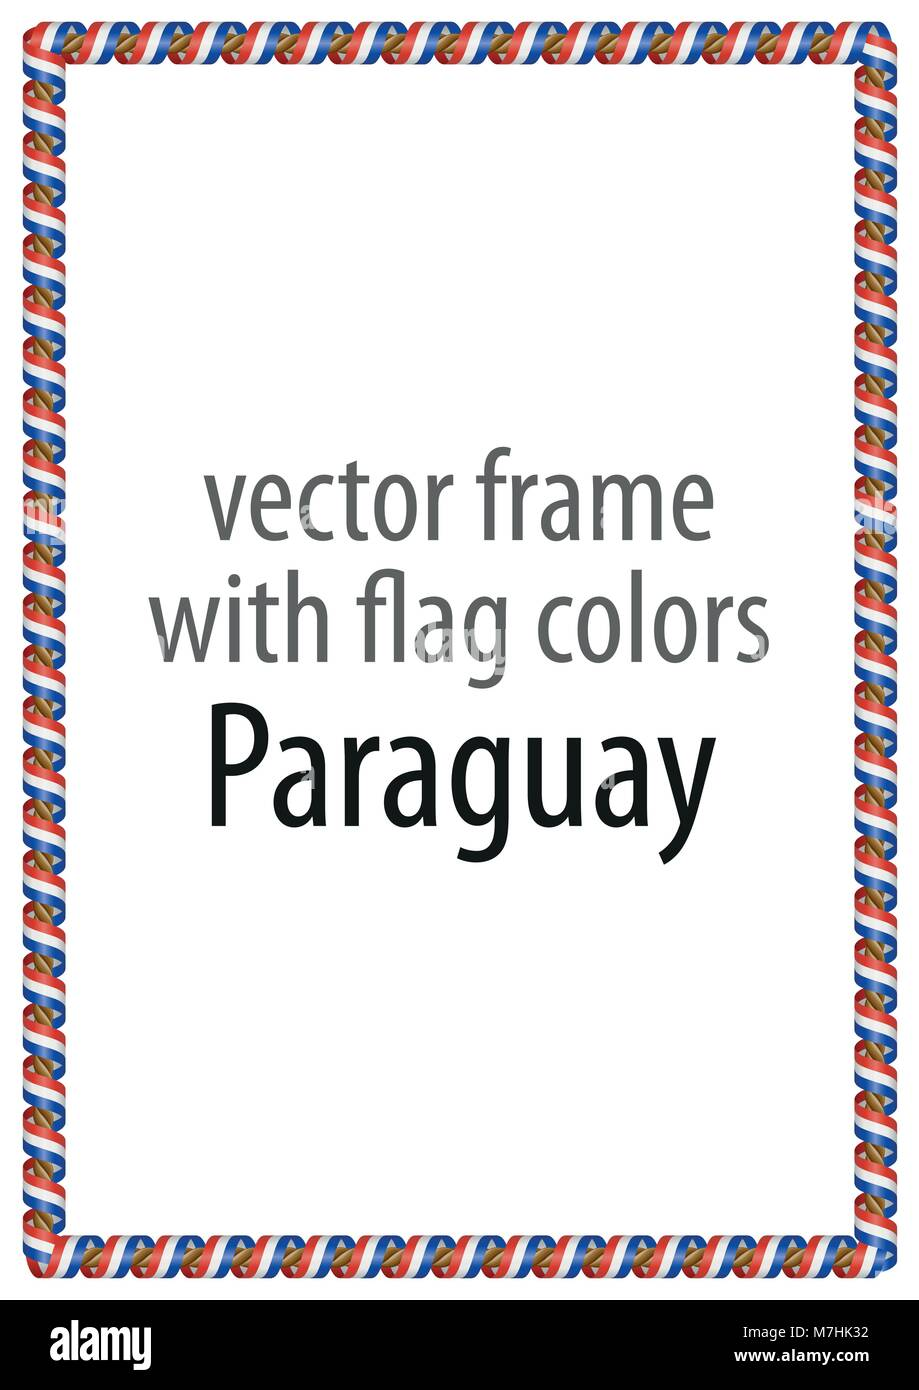 Paraguay Flag People Stockfotos & Paraguay Flag People Bilder - Alamy